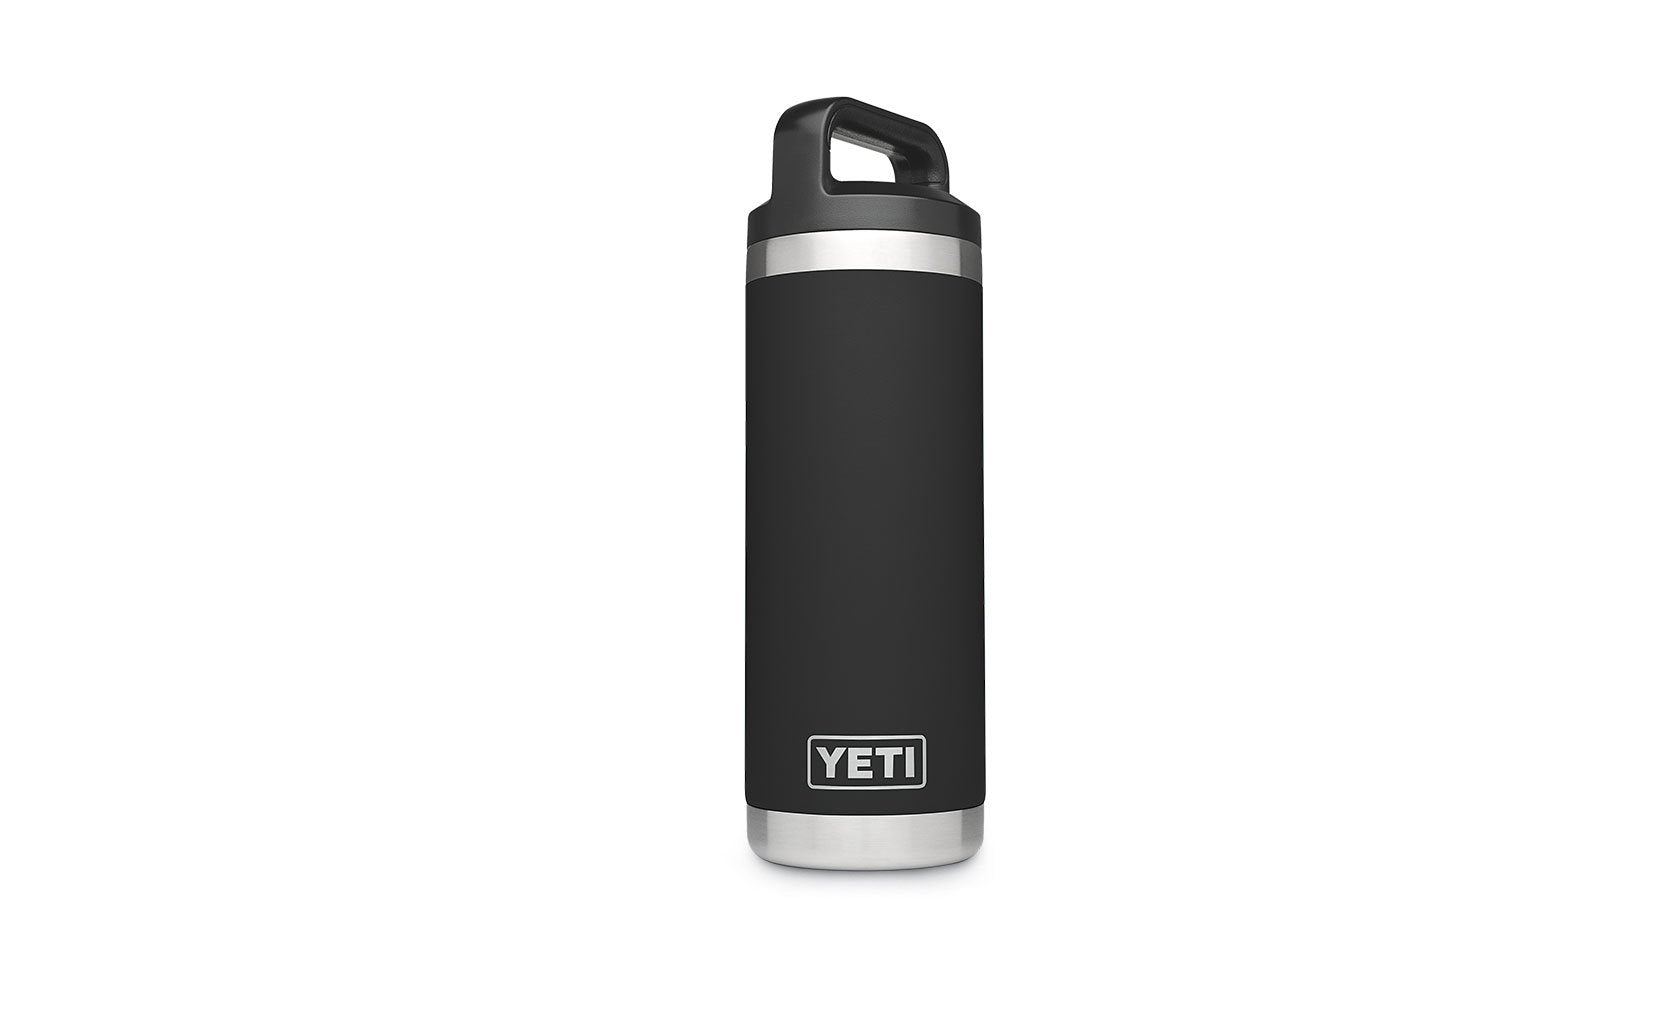 Yeti Rambler 18oz Bottle Black - Board Store YetiDrinkware